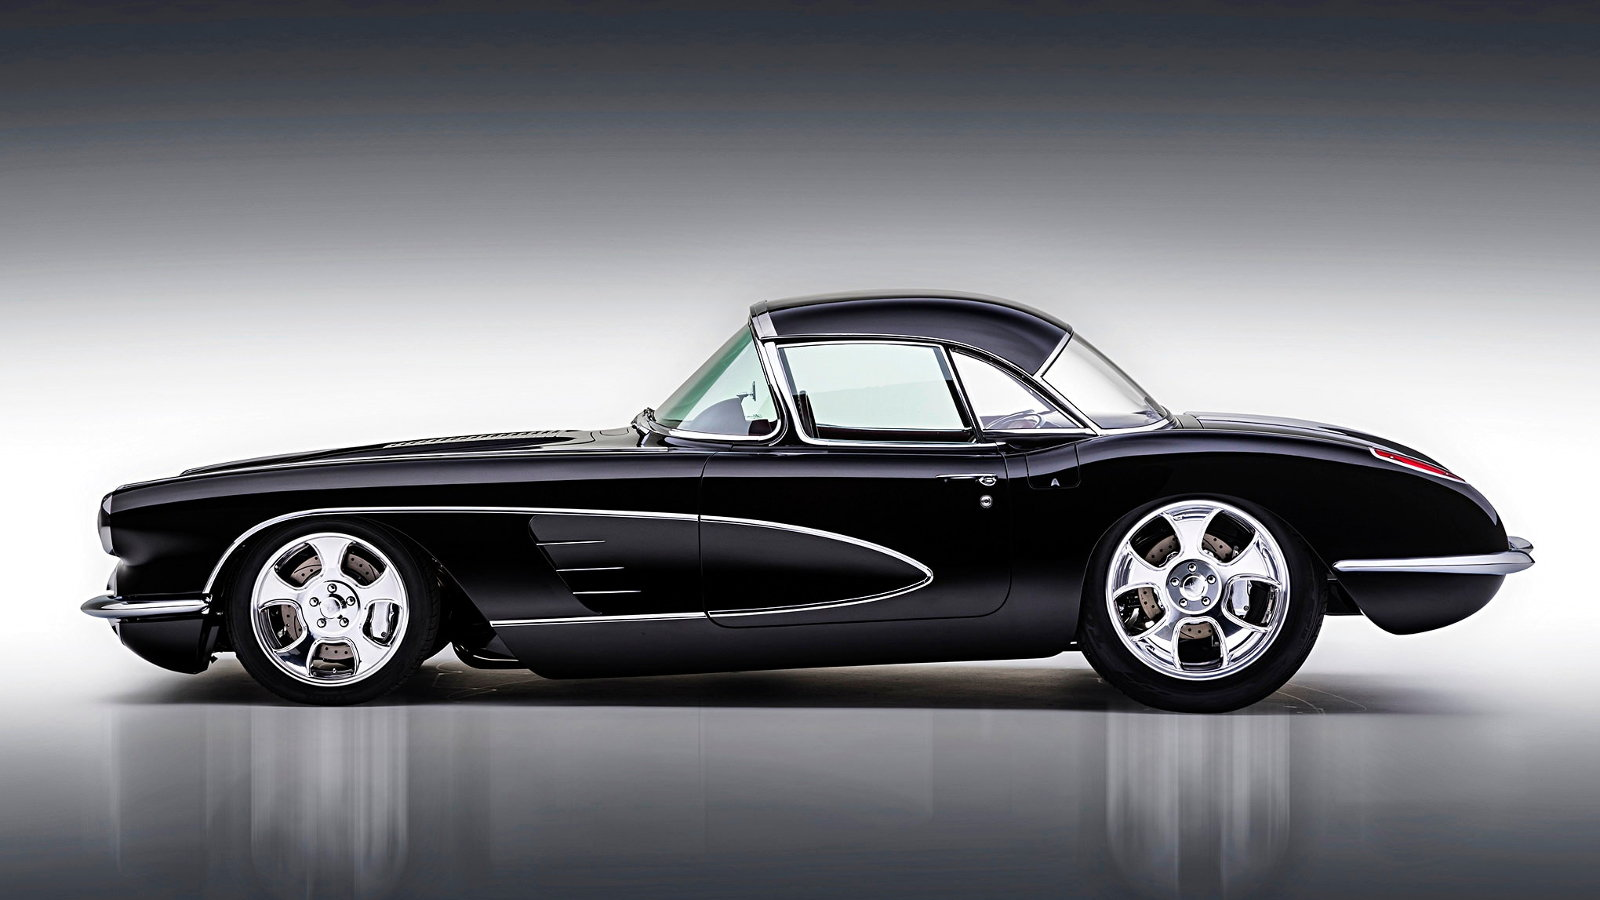 1958 C1 Gets the Hot Rod Treatment from Alloway